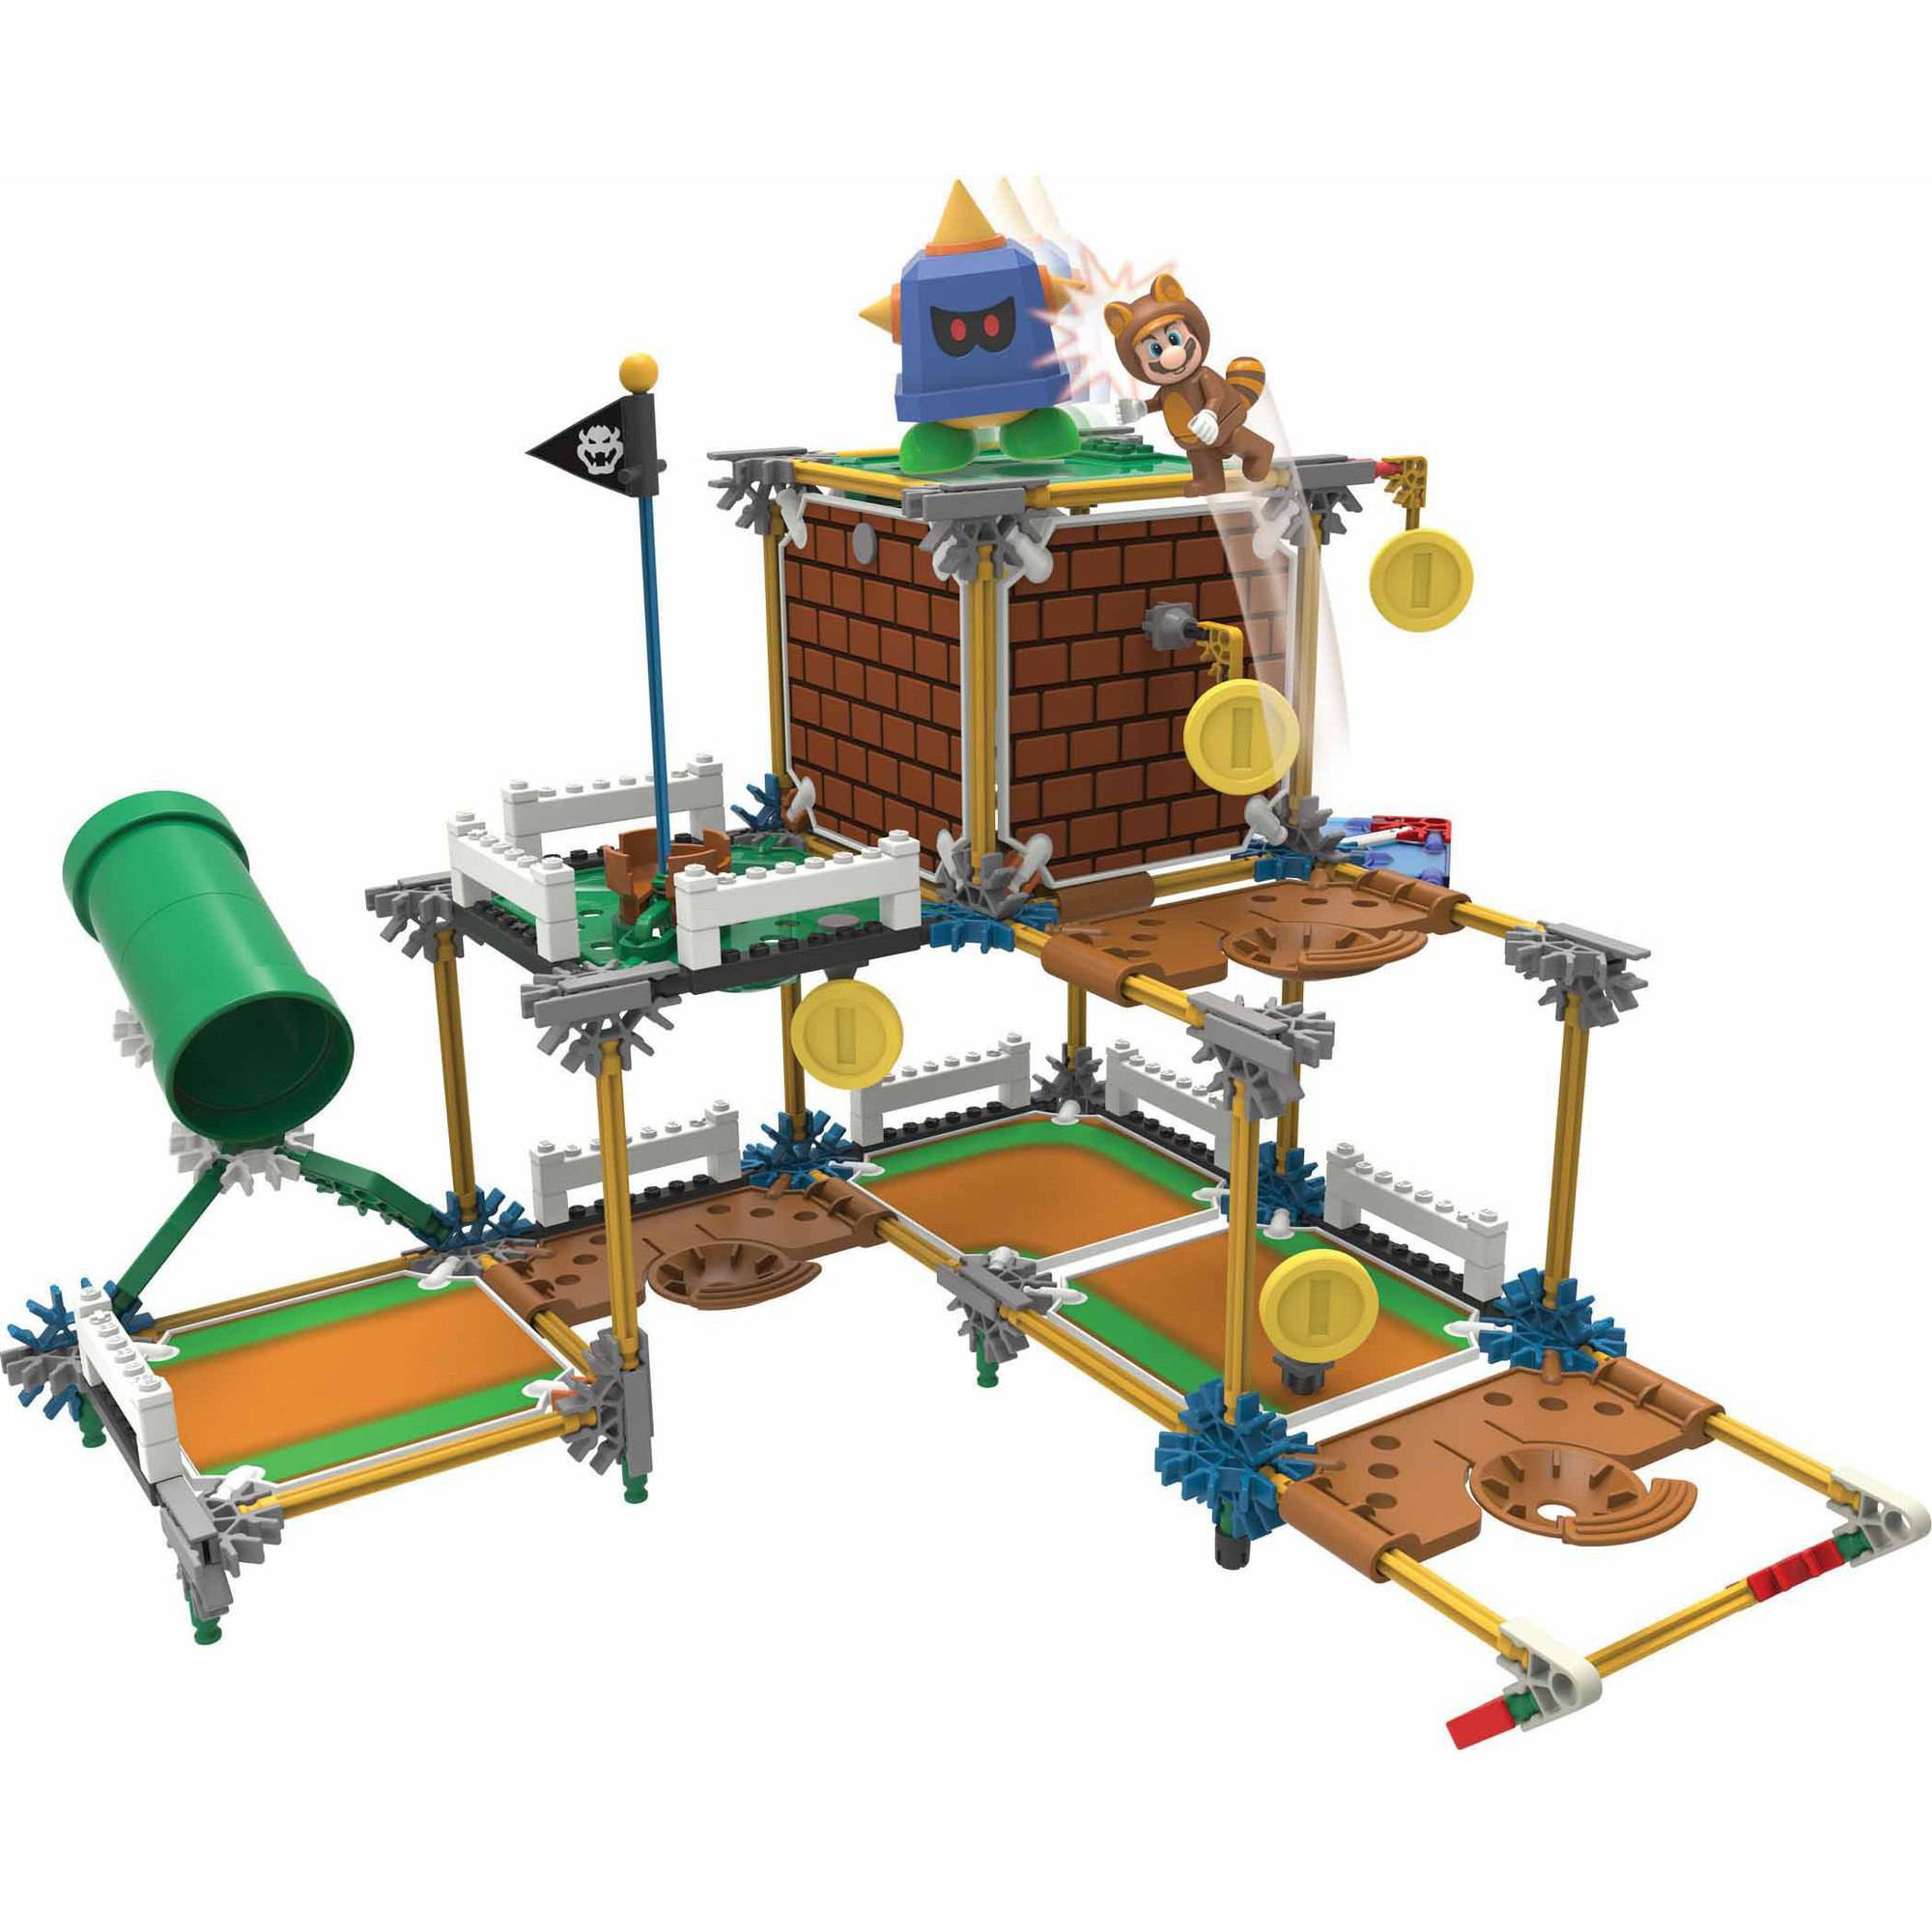 K'NEX Super Mario Prongo Building Set